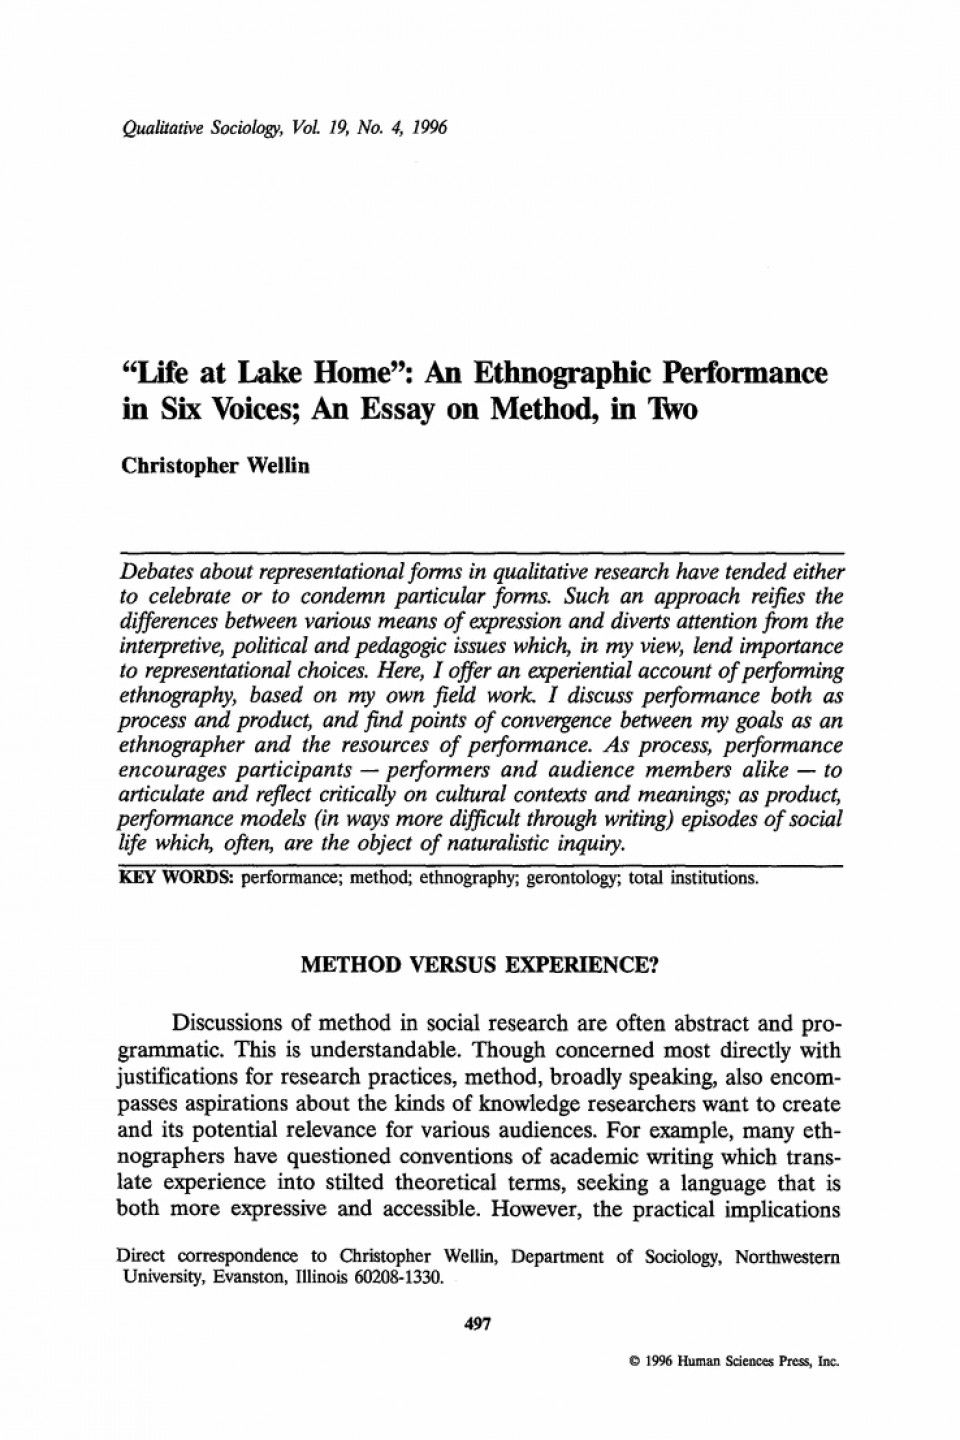 003 Ethnographic Essay Examples Example Profile Interview Of Editable Narrative Paper With Ethnogr Unique Micro Ethnography 960